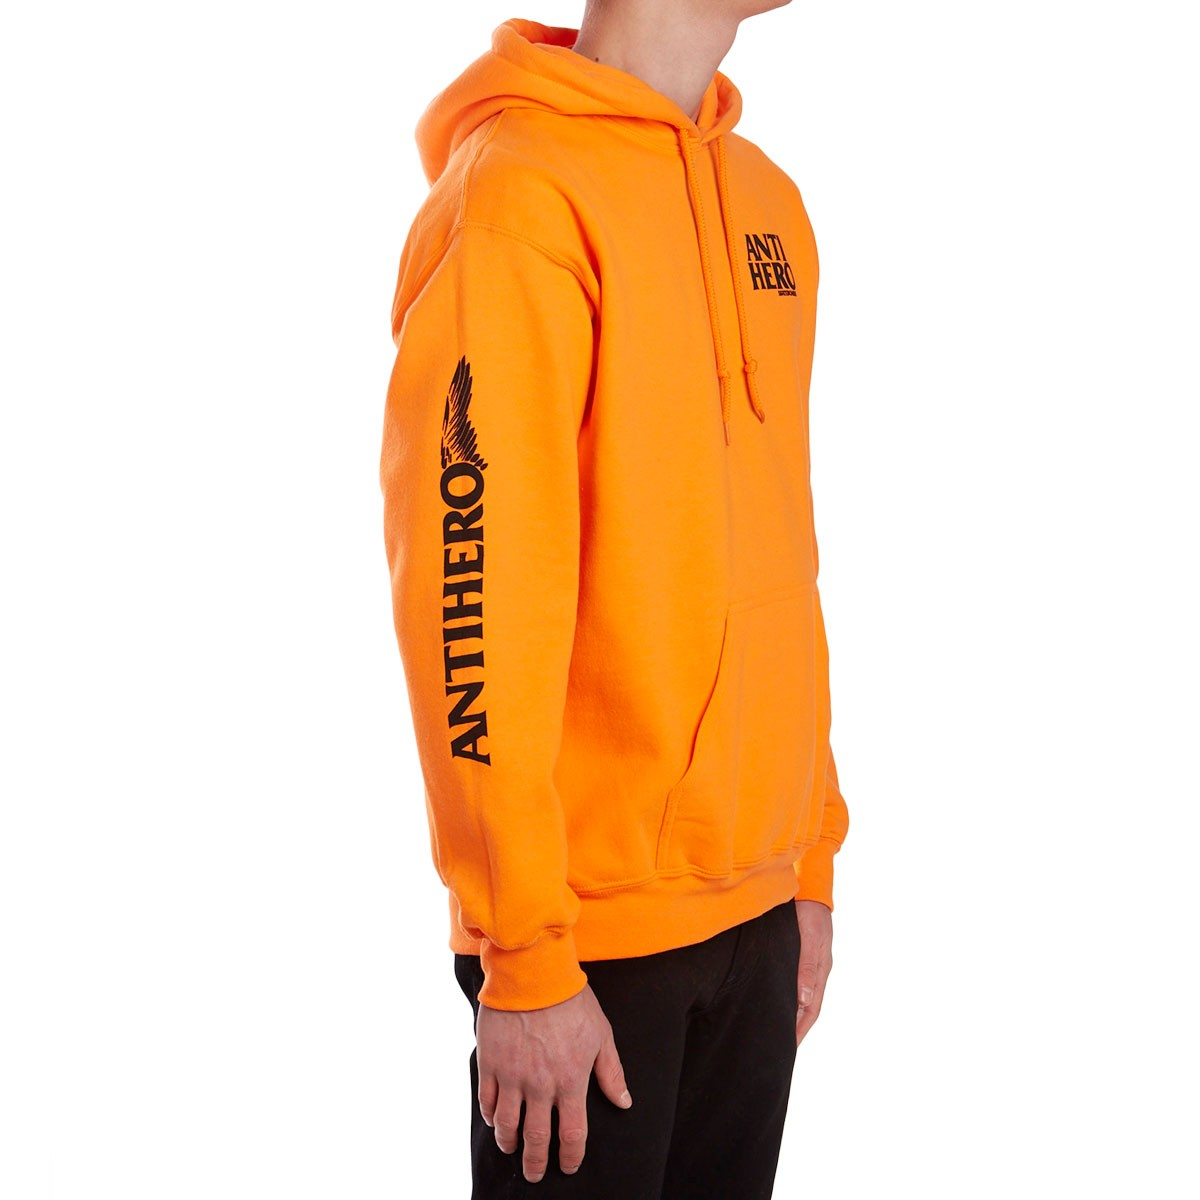 697fdb0bf8e2 Anti-Hero Winghero Hoodie - Safety Orange